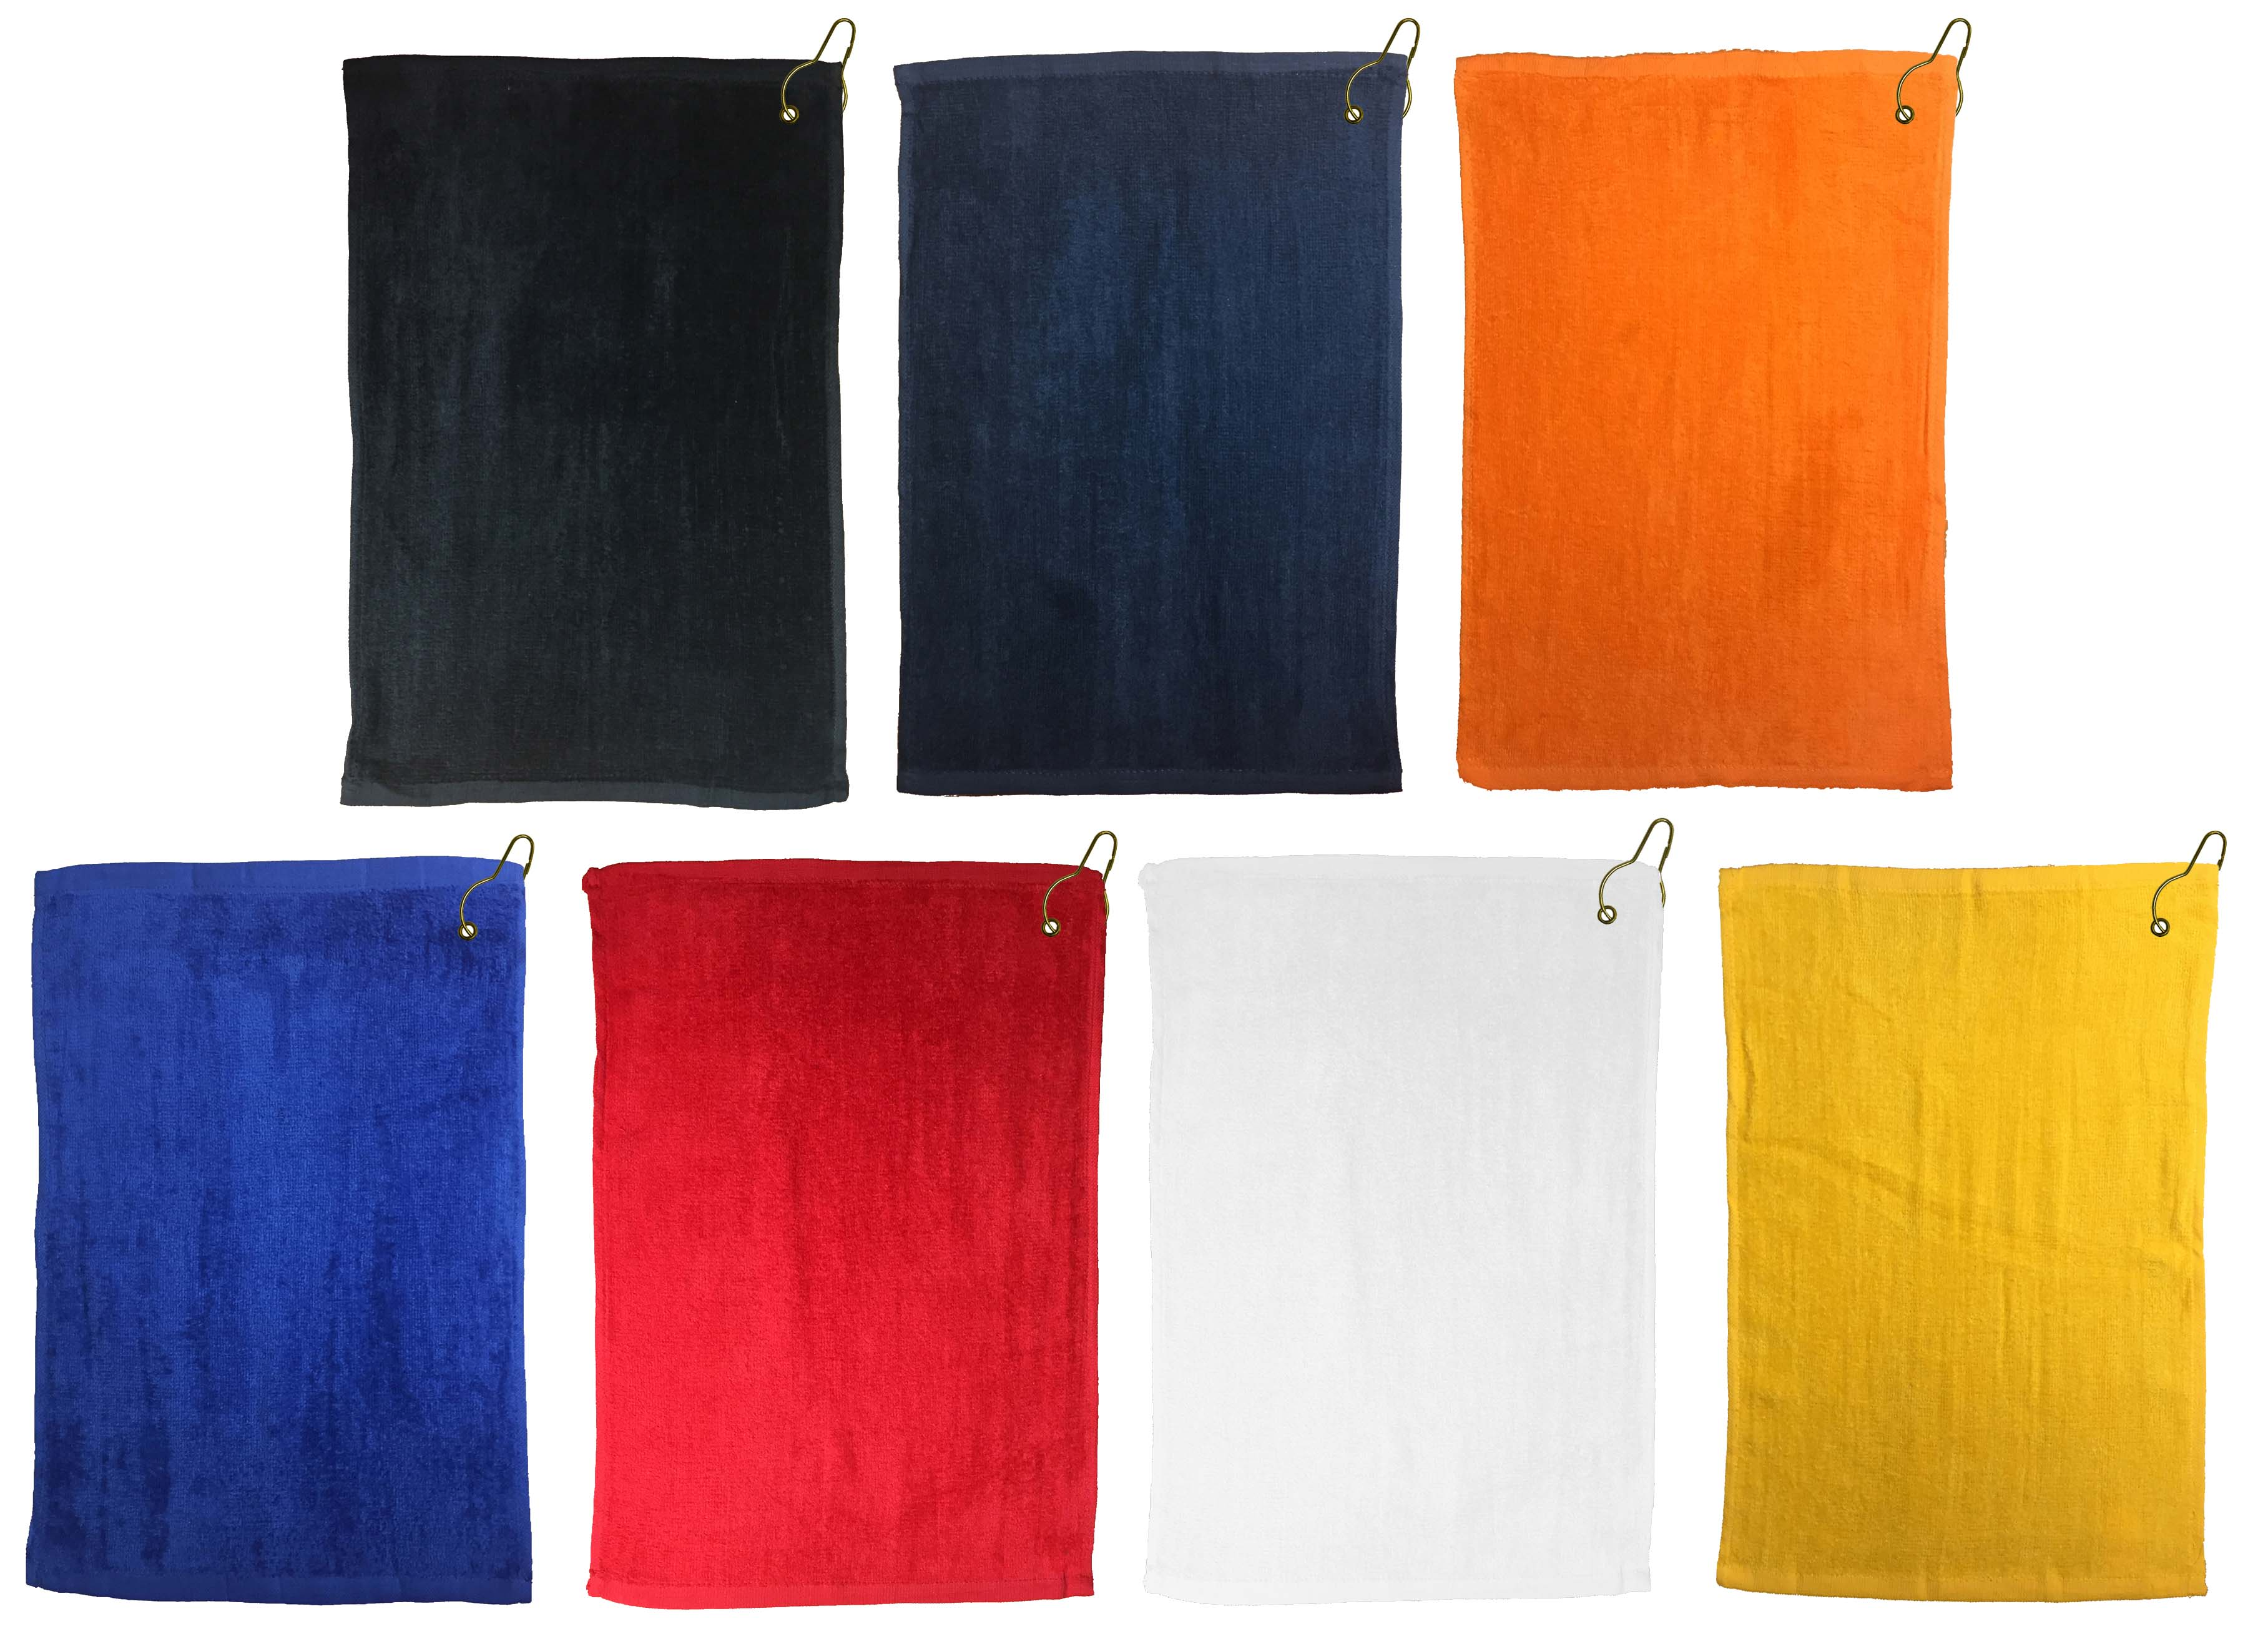 Economy Golf Towel 11x17 with Grommet and Hook, 100% Cotton. Terry Velour 1.0 lbs per dz. (Assorted Colors)